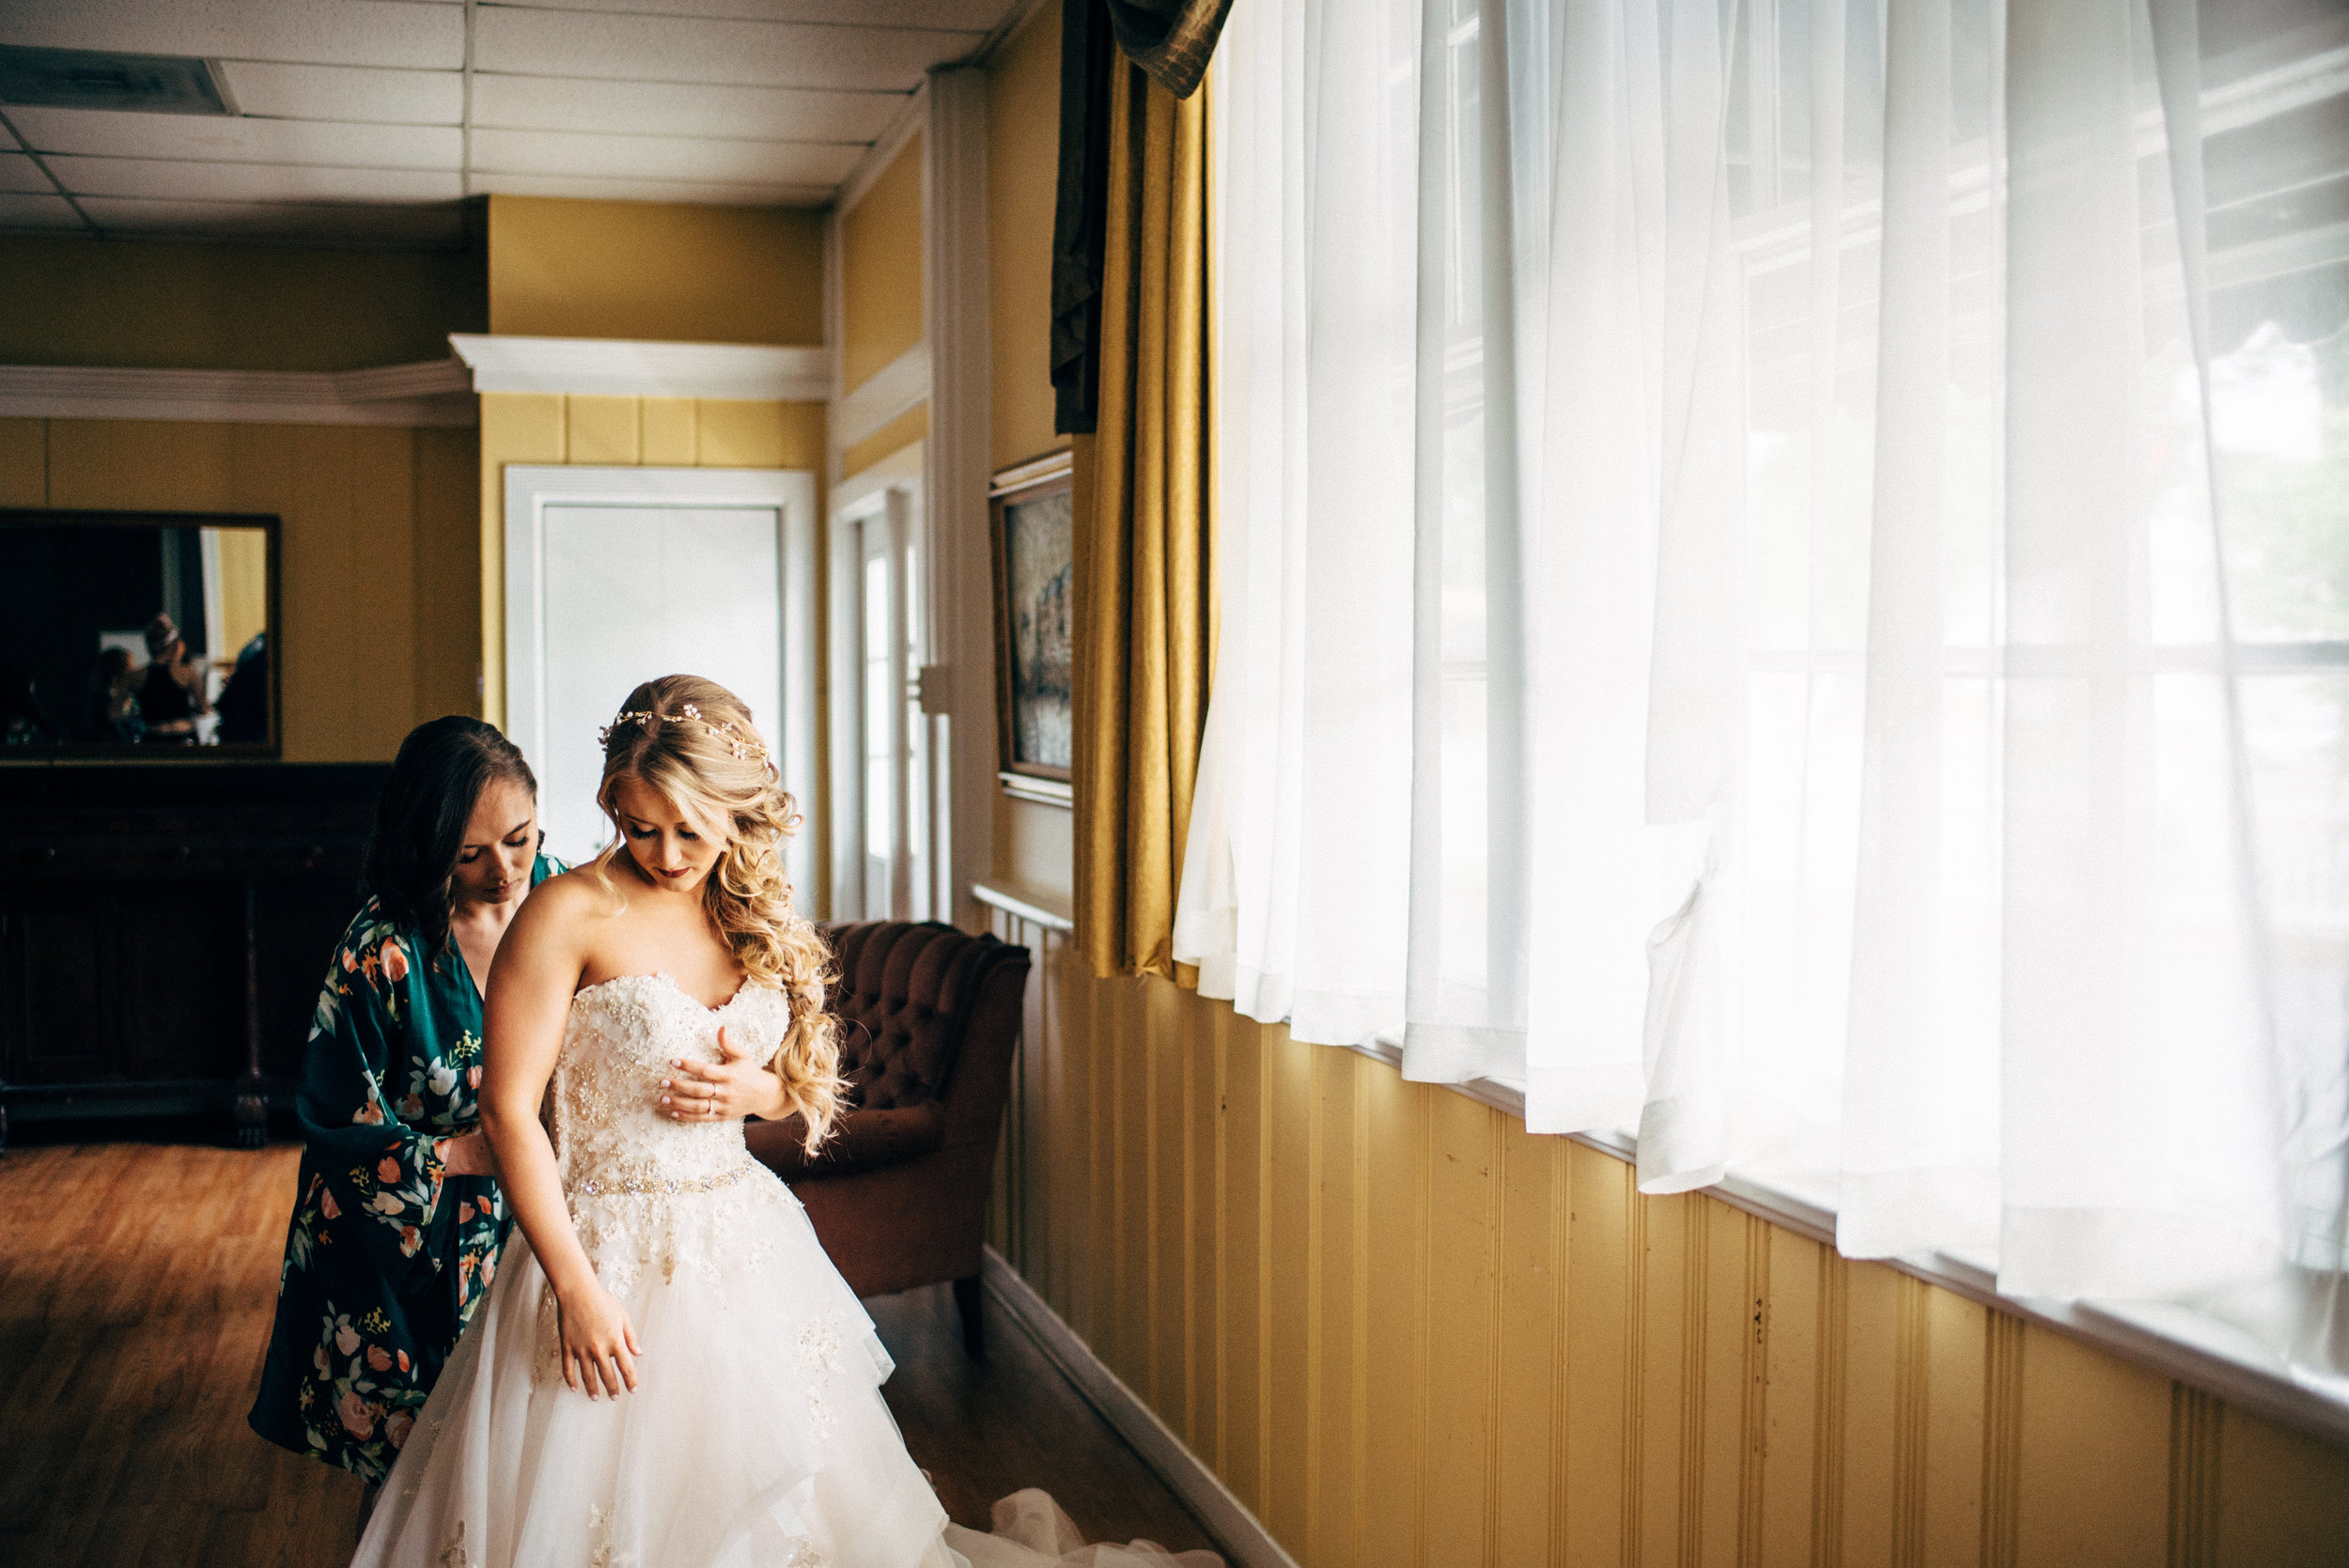 bridesmaid helping bride with her wedding dress in front of window at The Inn at the Old Silk Mill